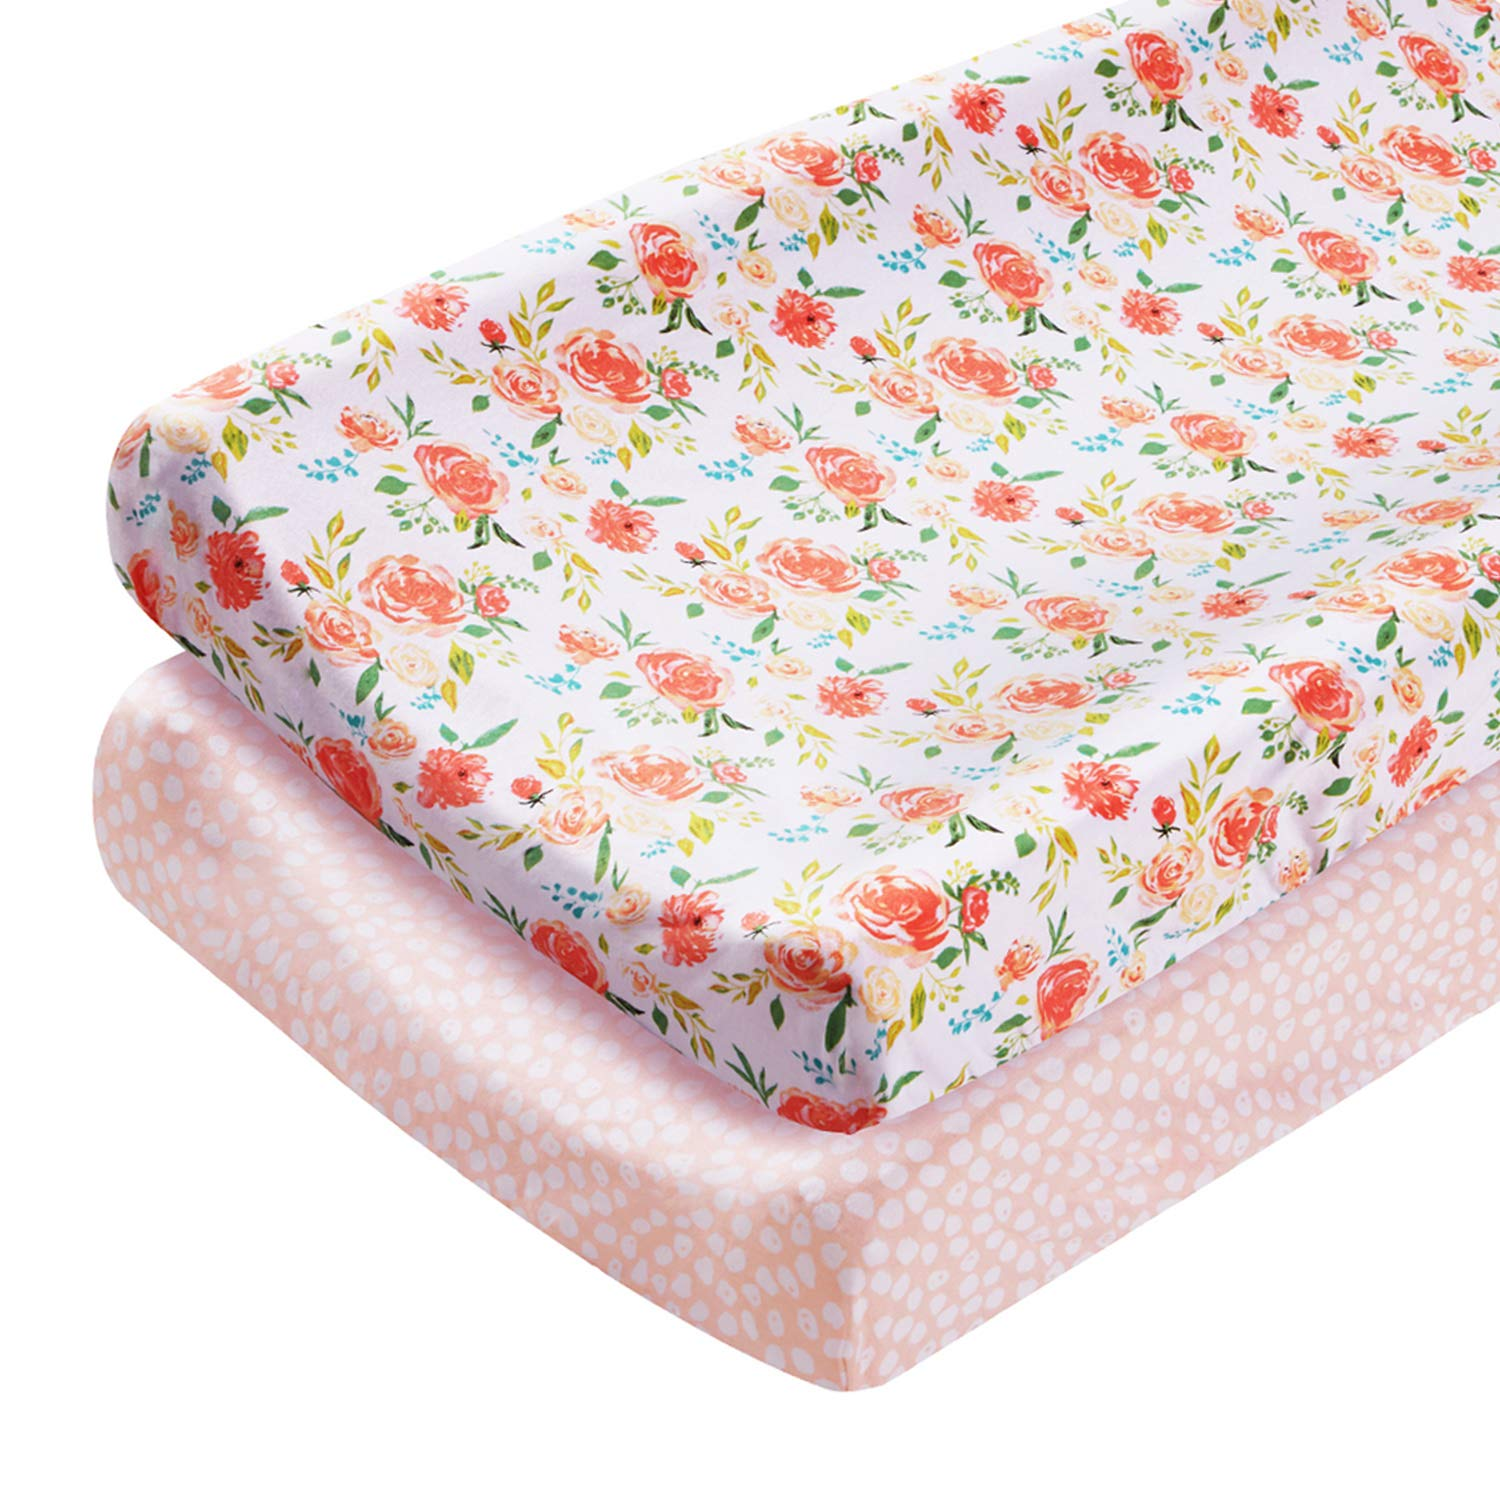 Fit Standard Contoured Changing Table Pads LNGLAT 2-Pack Cotton Cradle Sheets for Baby Girls Changing Pad Covers